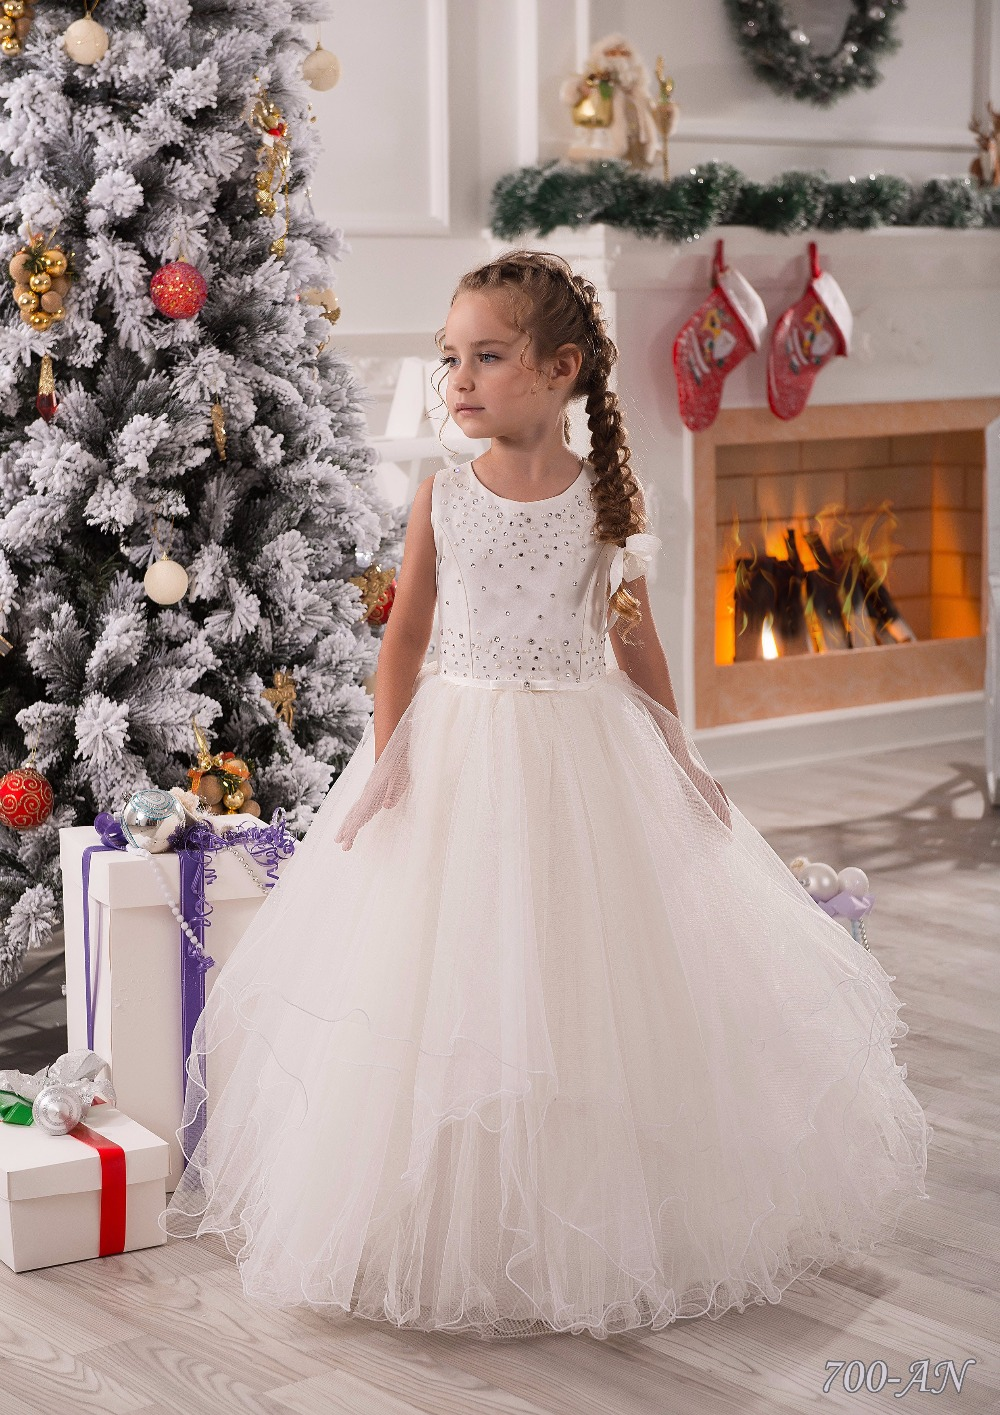 Elegant Lace Appliques Sleeveless Long Ruffles Holy Communion Infant Girls Dresses Beading Tulle Ball Gowns 2017 New 2-12 Y new arrival flower girls dresses high quality lace appliques beading short sleeve ball gowns custom holy first communion gowns